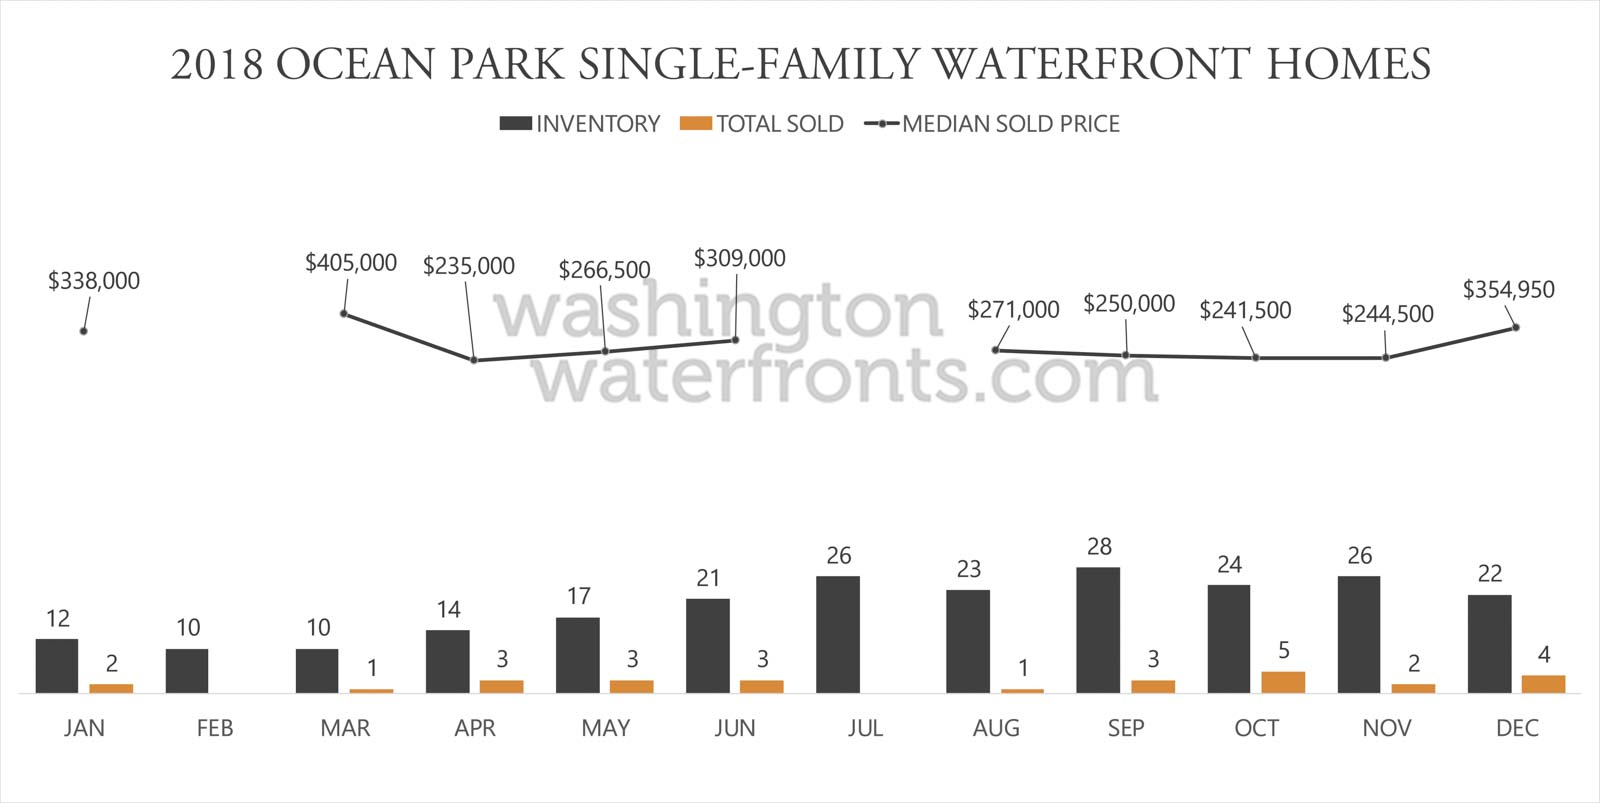 Ocean Park Waterfront Inventory